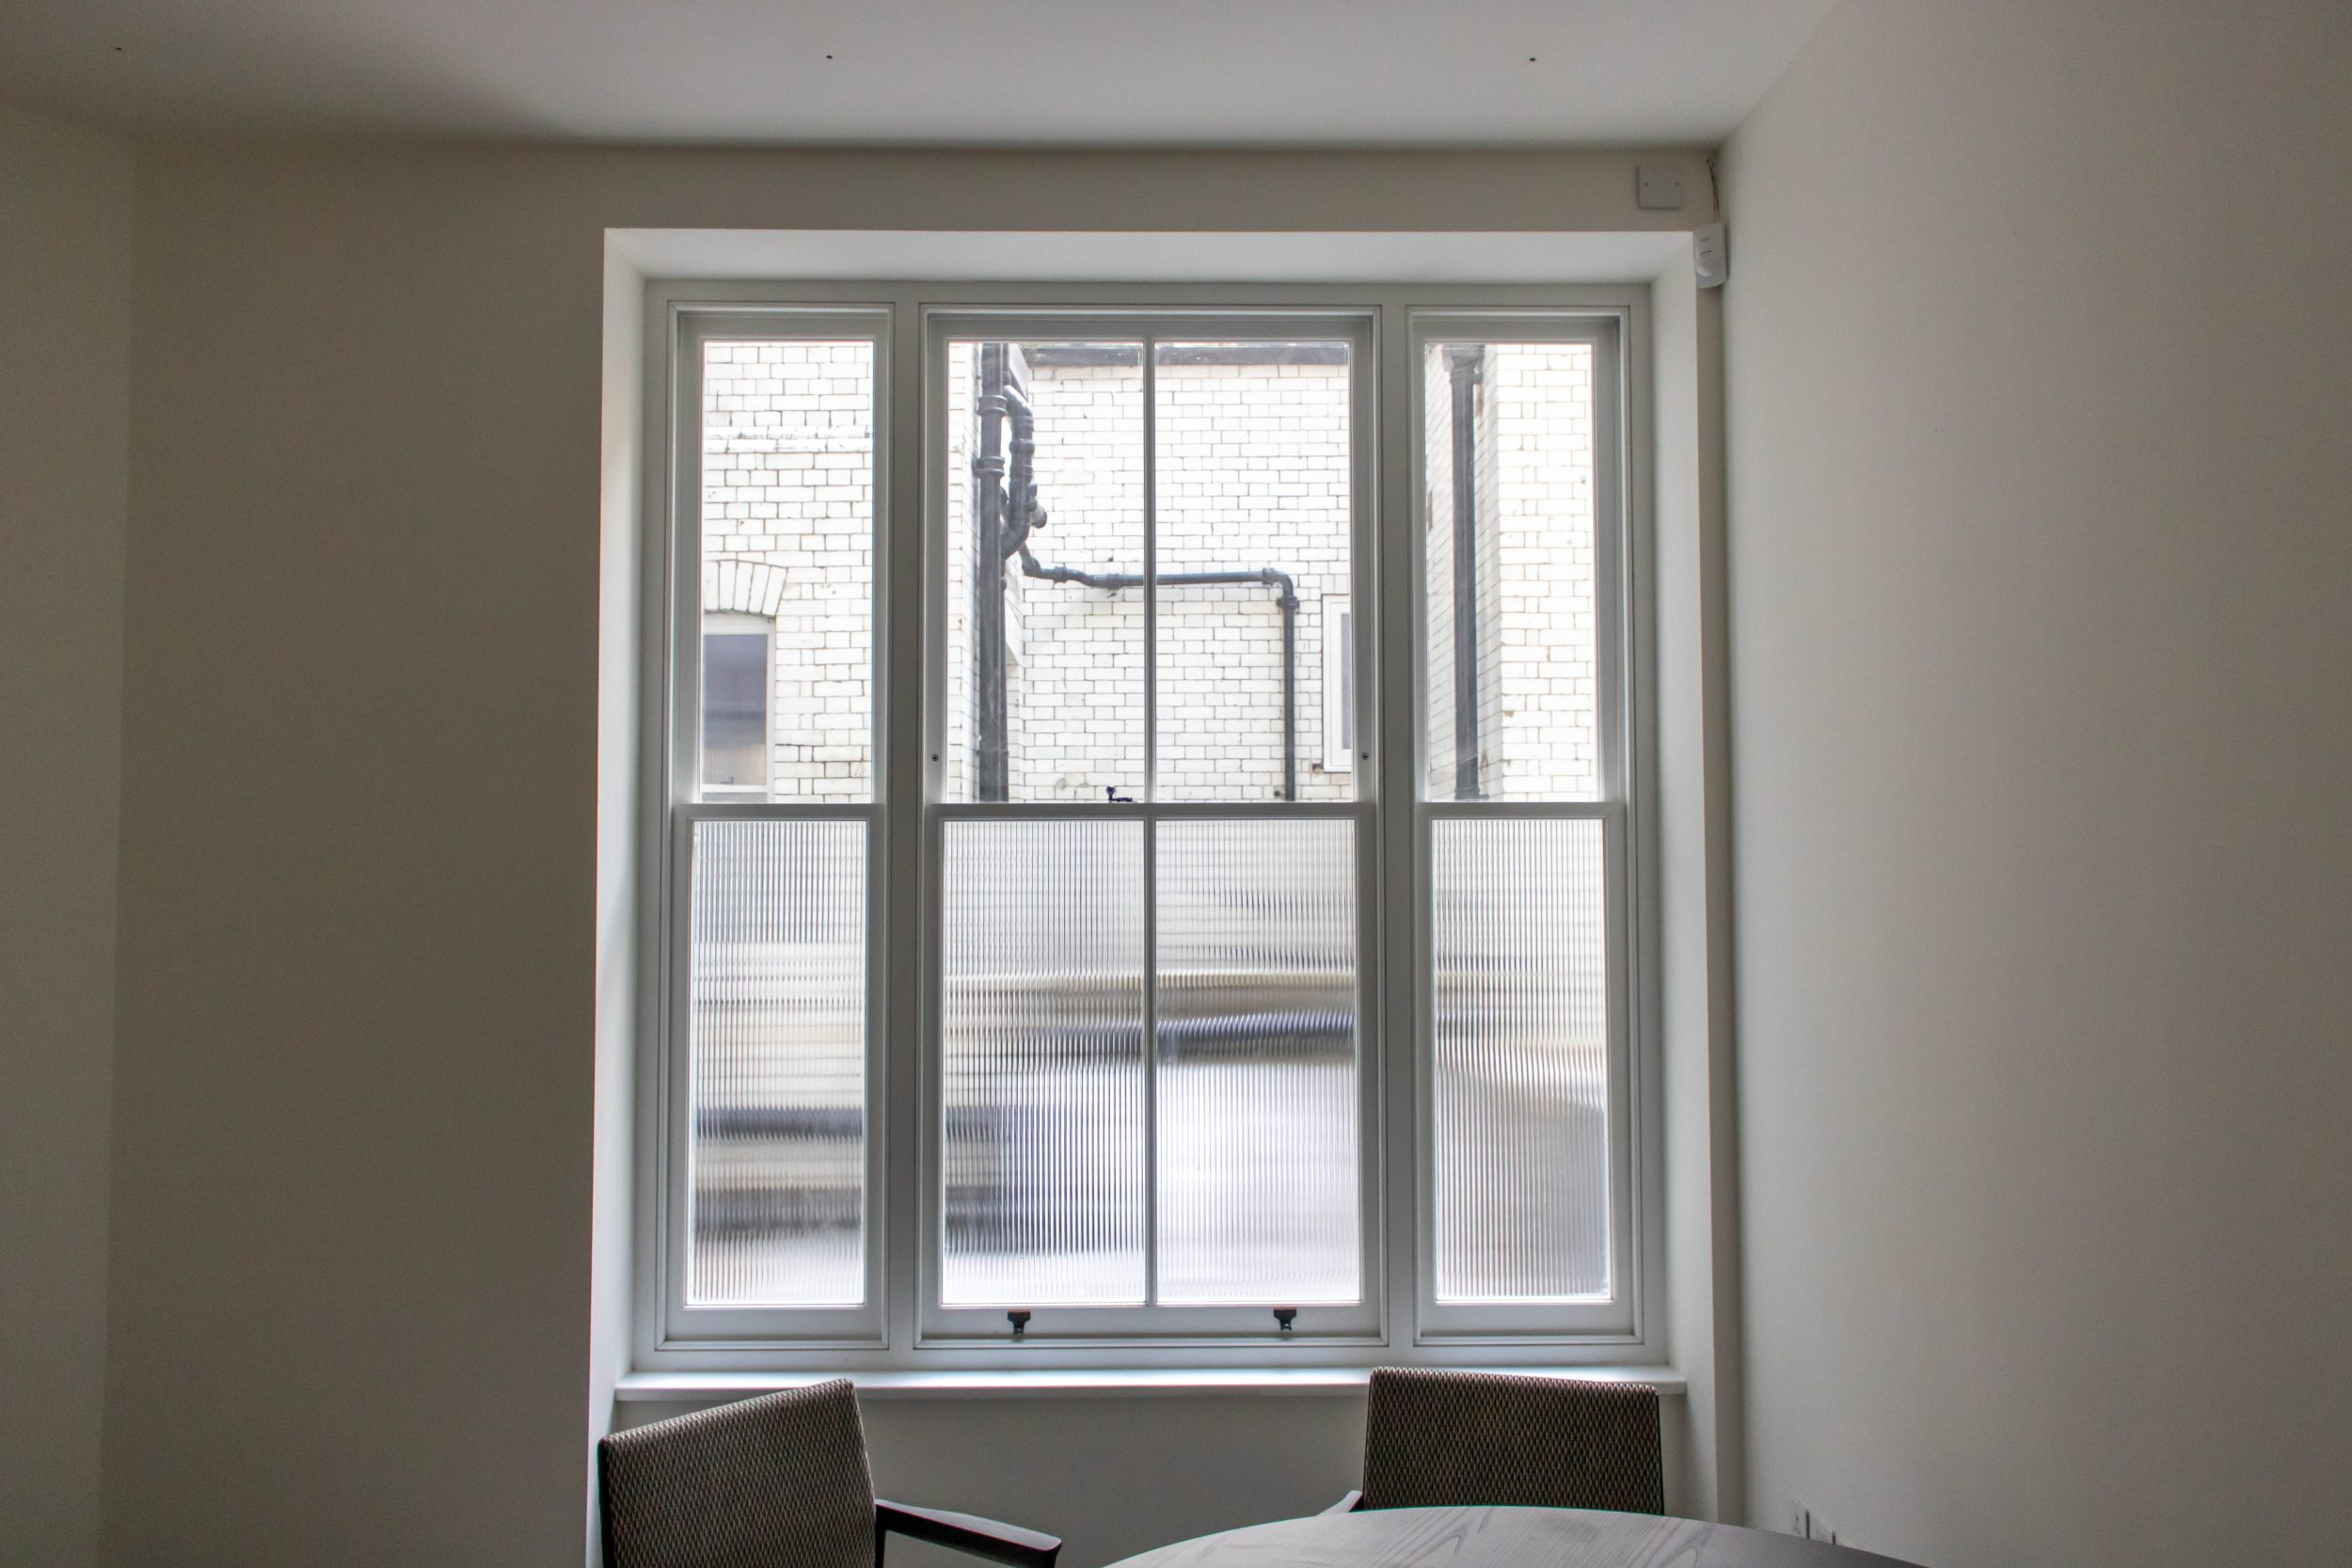 Sash Windows, Brick Street, Central London